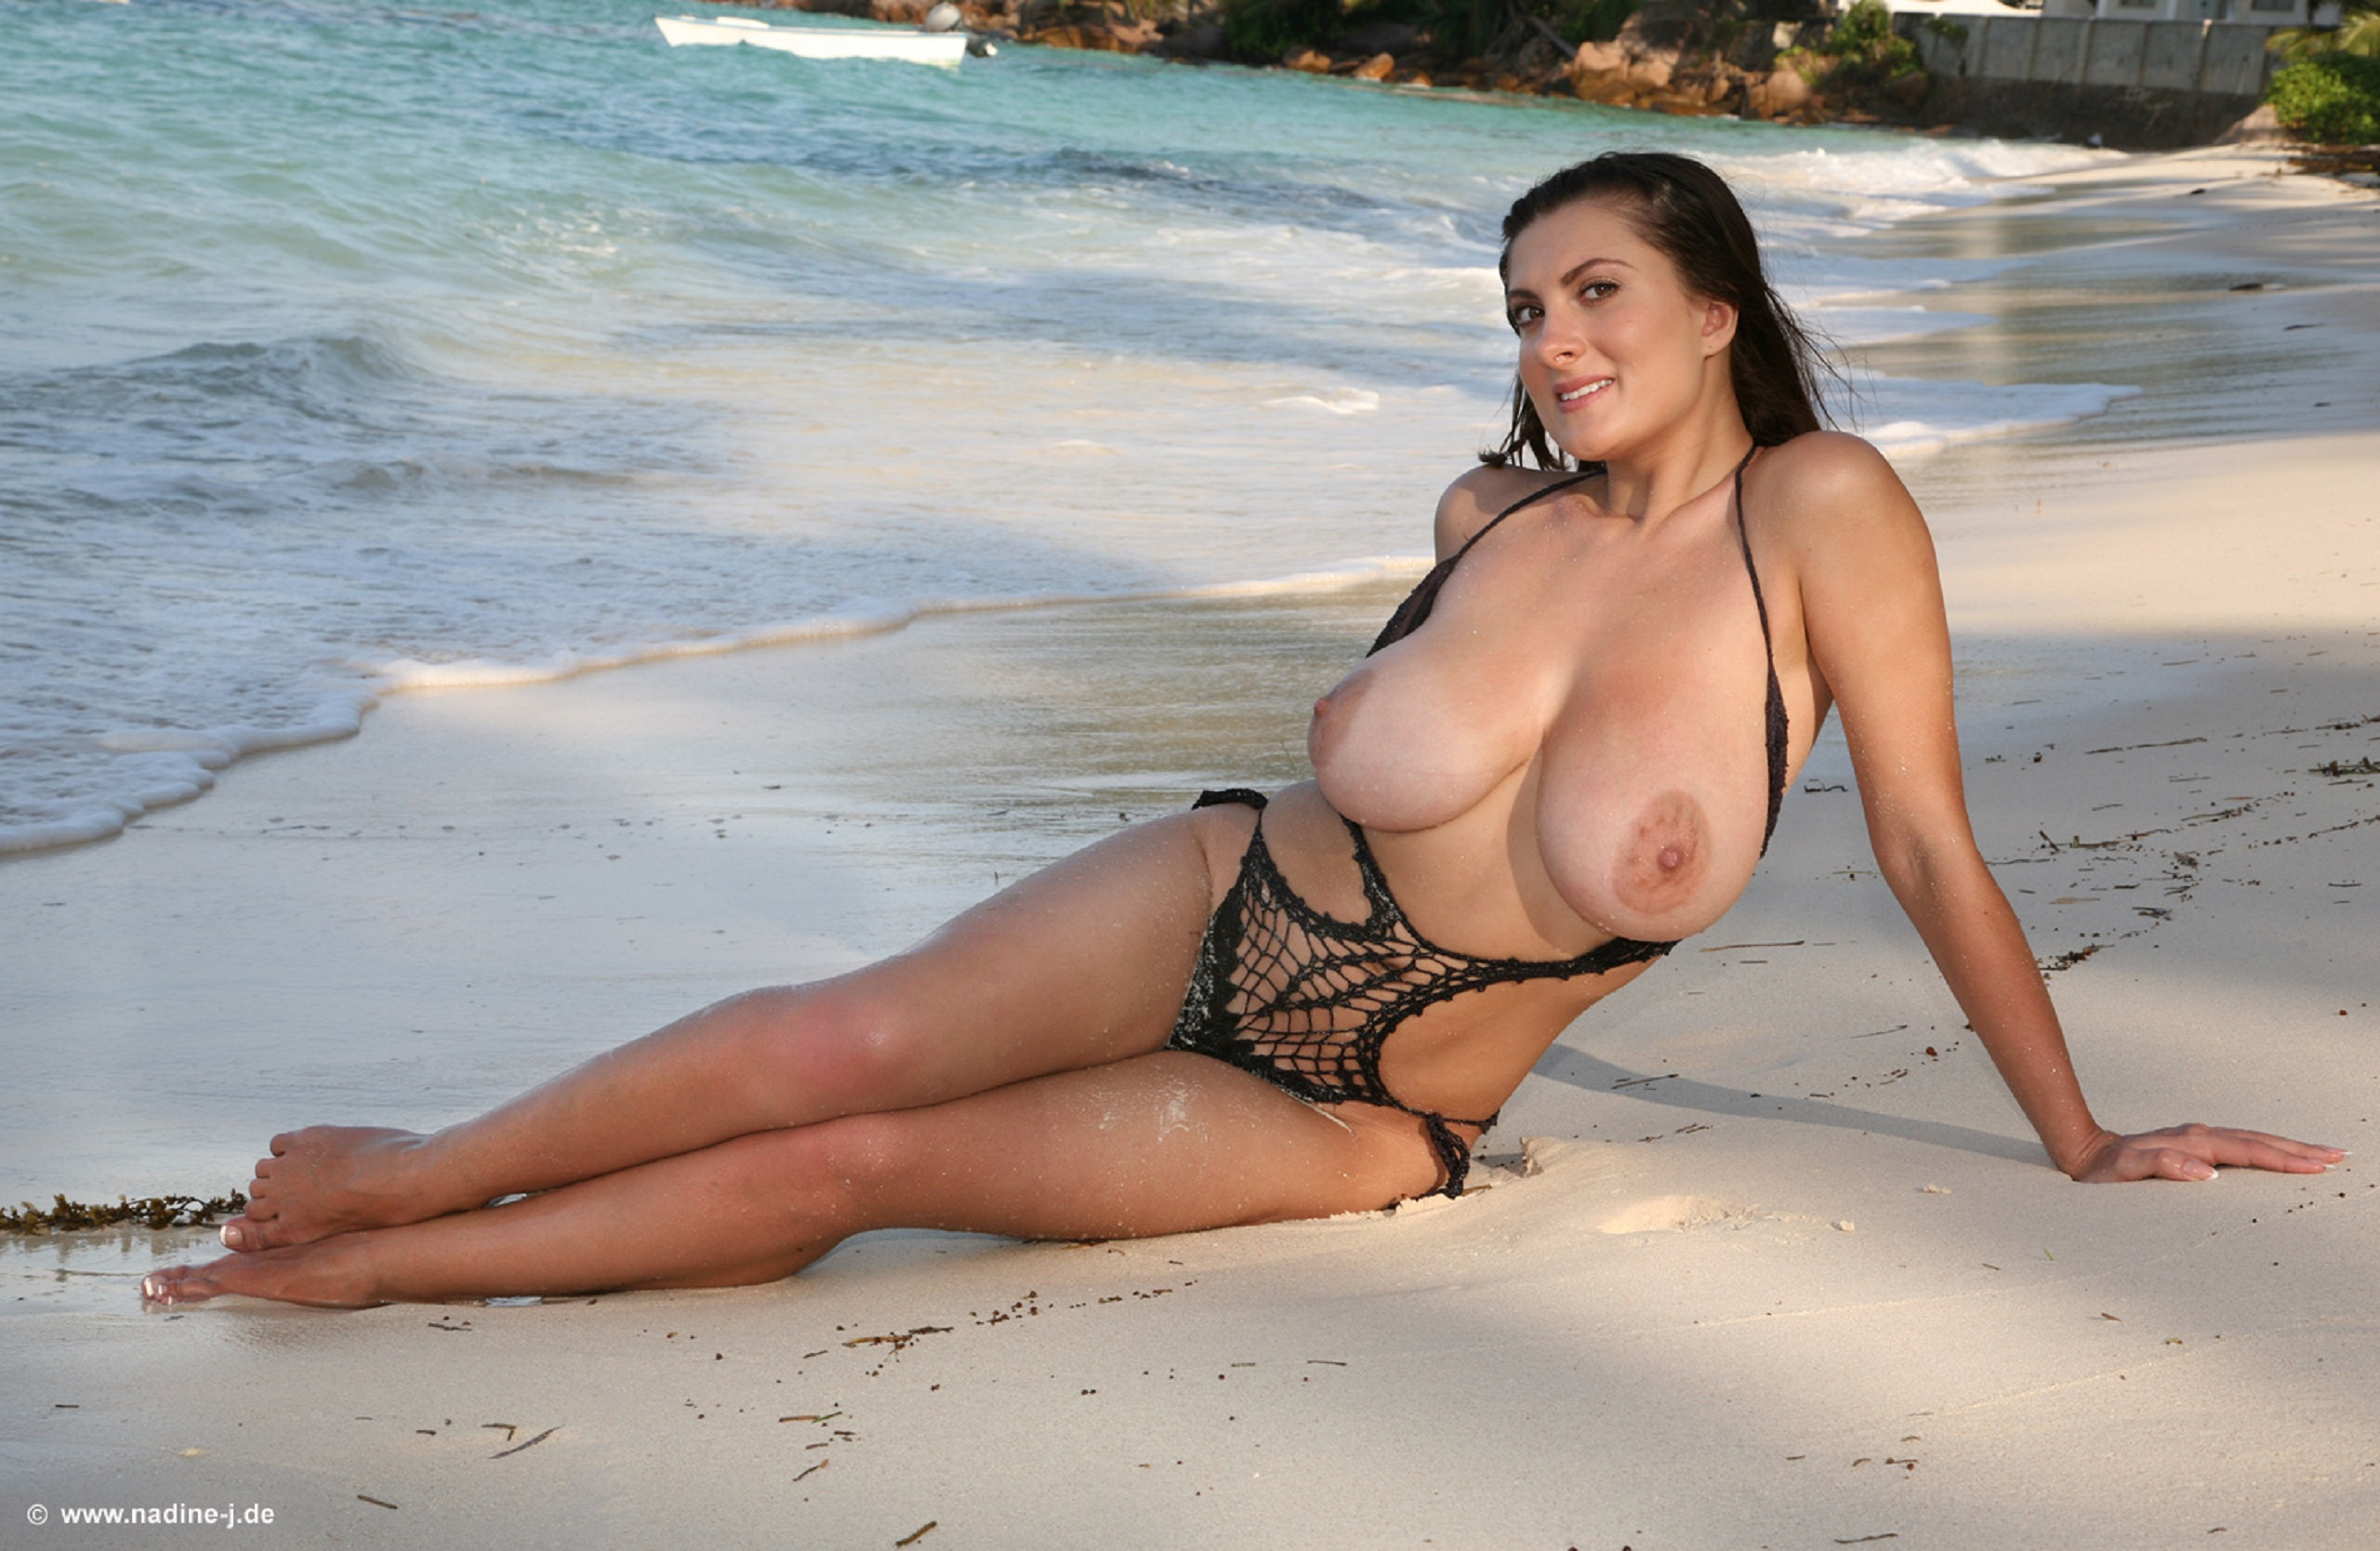 Wallpaper Valory Irene, Beach, Milf, Natural Big Tits -1242